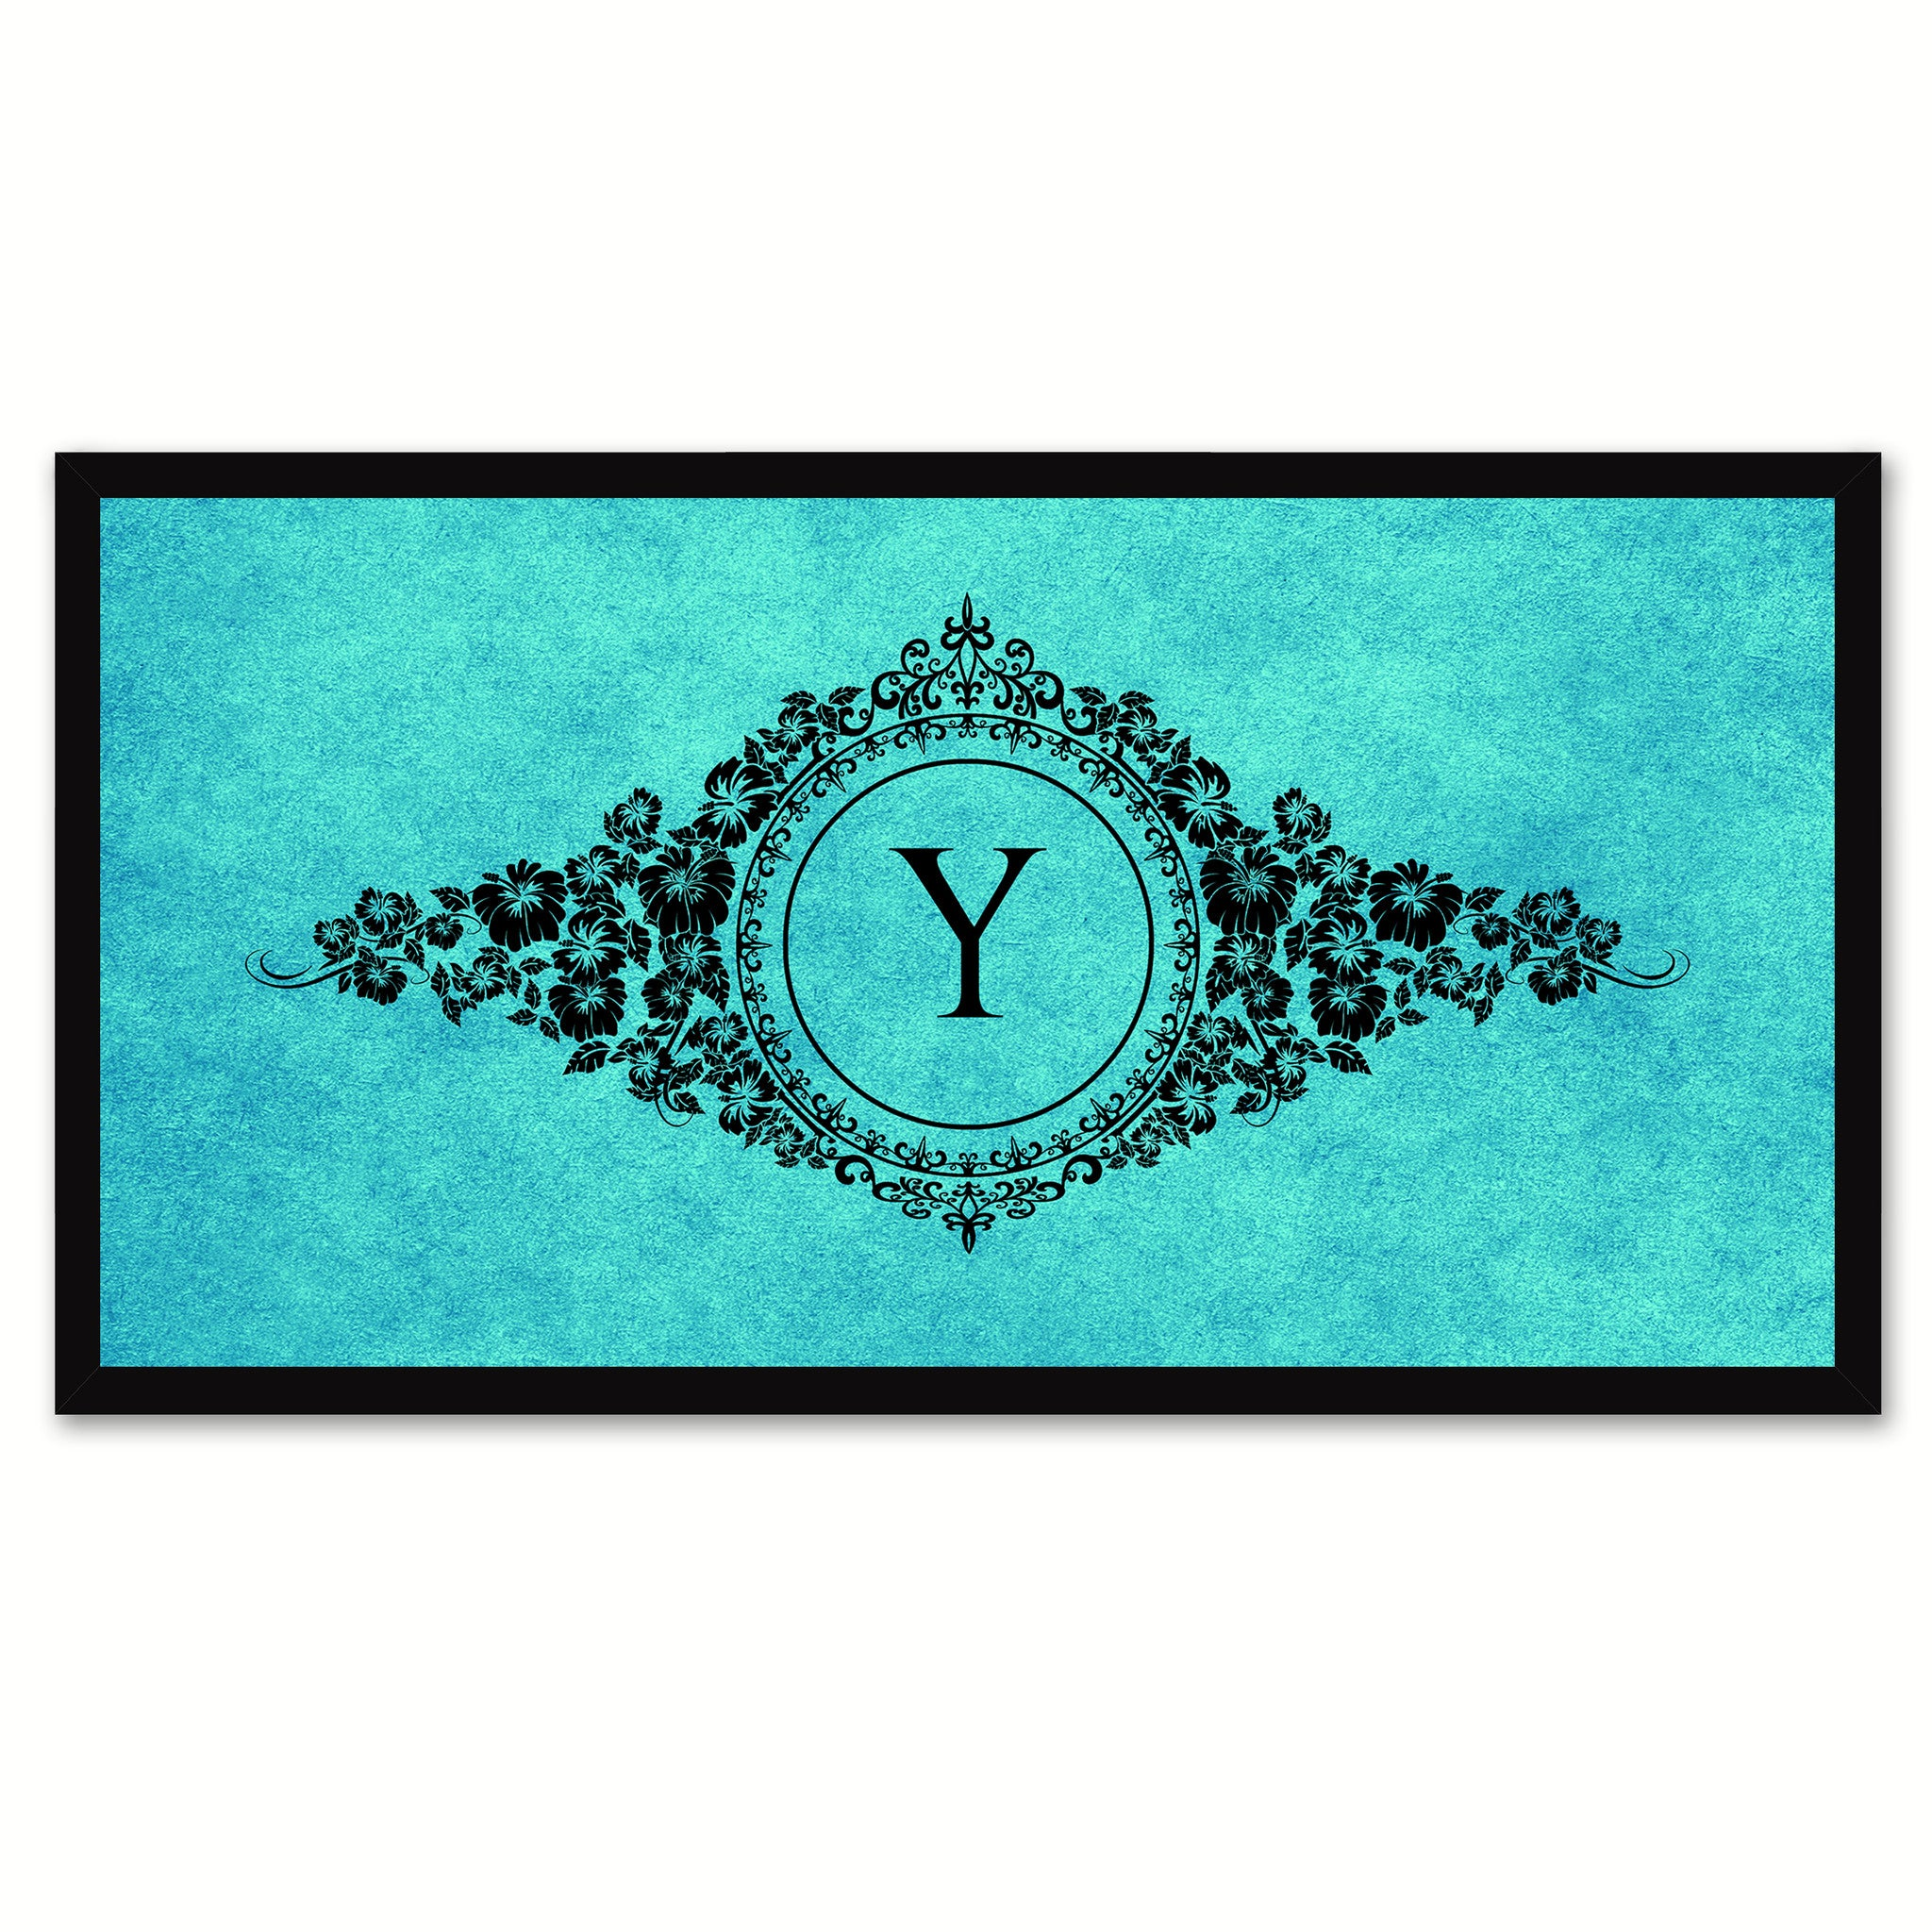 Alphabet Letter Y Auqa Canvas Print, Black Custom Frame